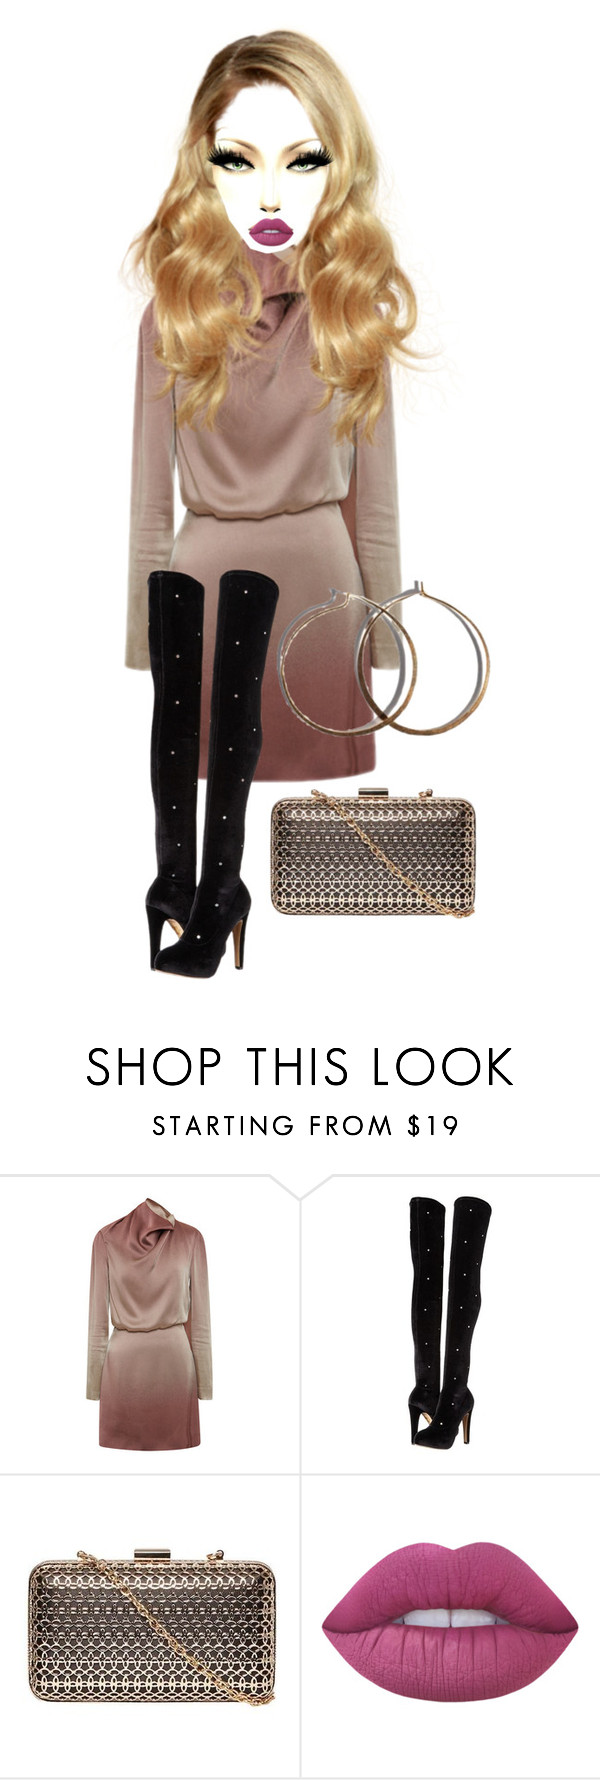 """Untitled #6430"" by mrsmayweather ❤ liked on Polyvore featuring Blumarine, Charlotte Olympia, Dorothy Perkins and Garance Doré"